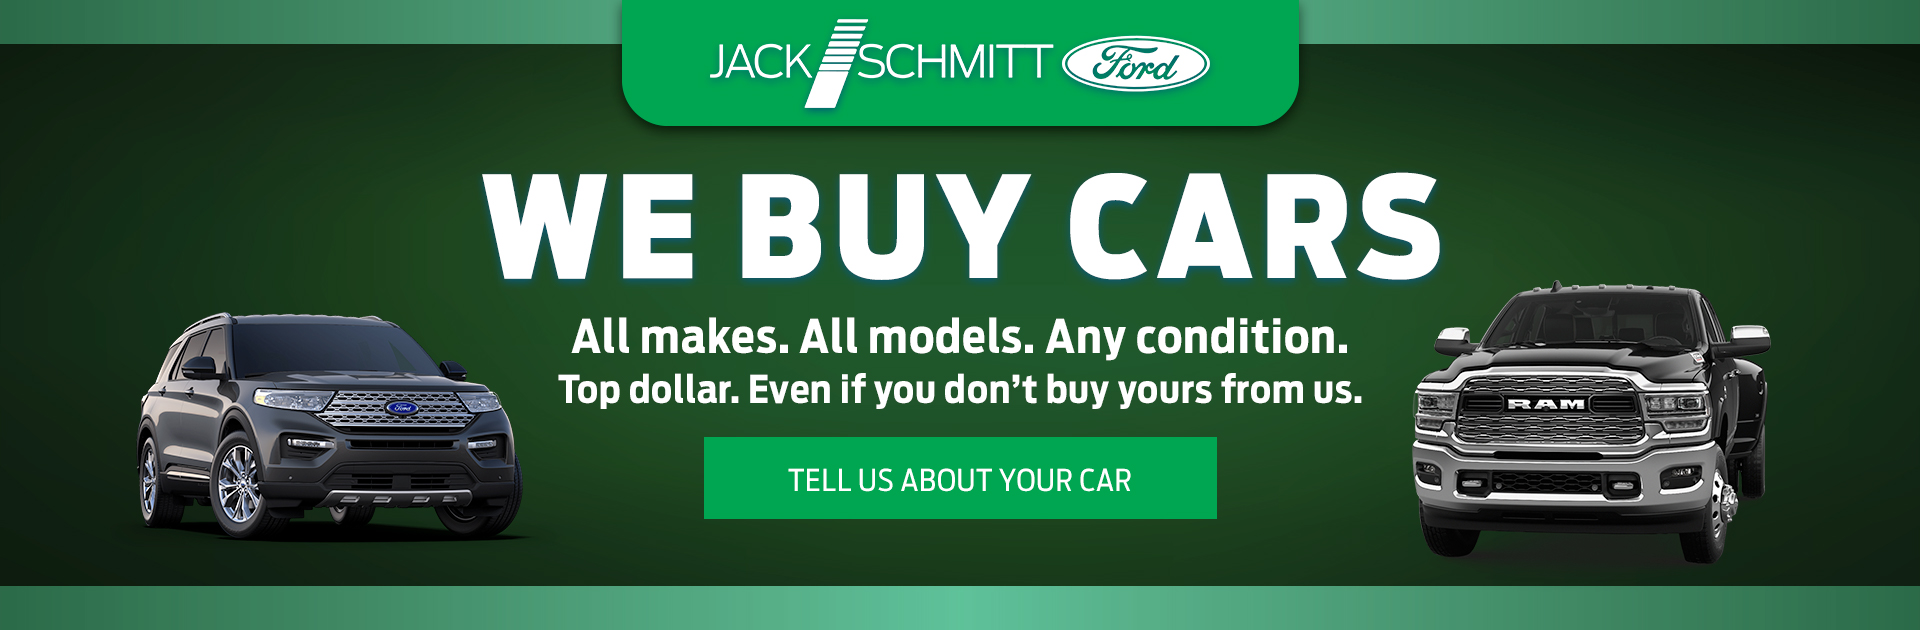 We Buy Cars Spring Banner